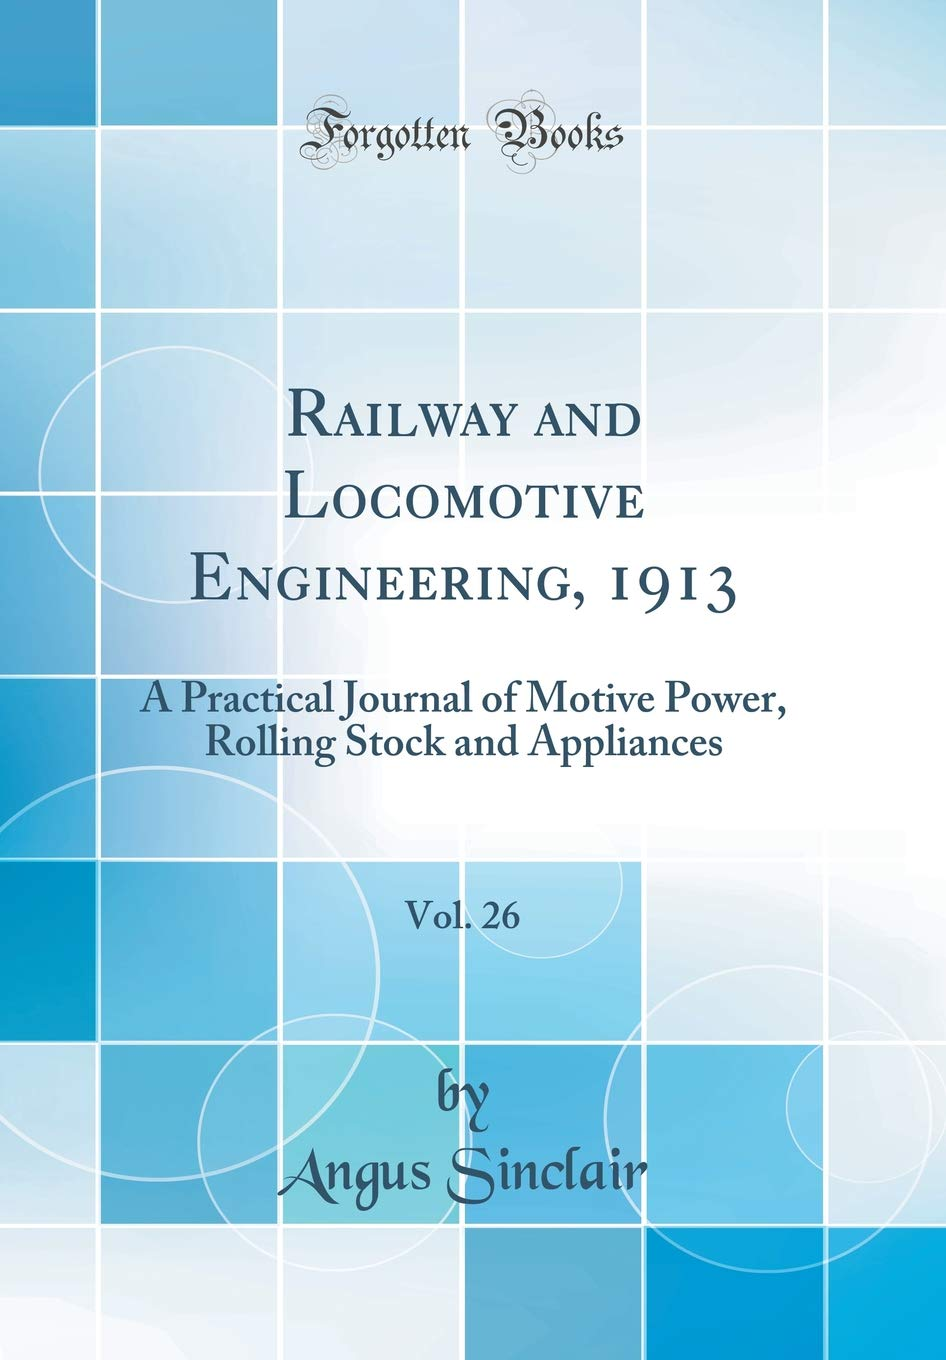 Download Railway and Locomotive Engineering, 1913, Vol. 26: A Practical Journal of Motive Power, Rolling Stock and Appliances (Classic Reprint) PDF